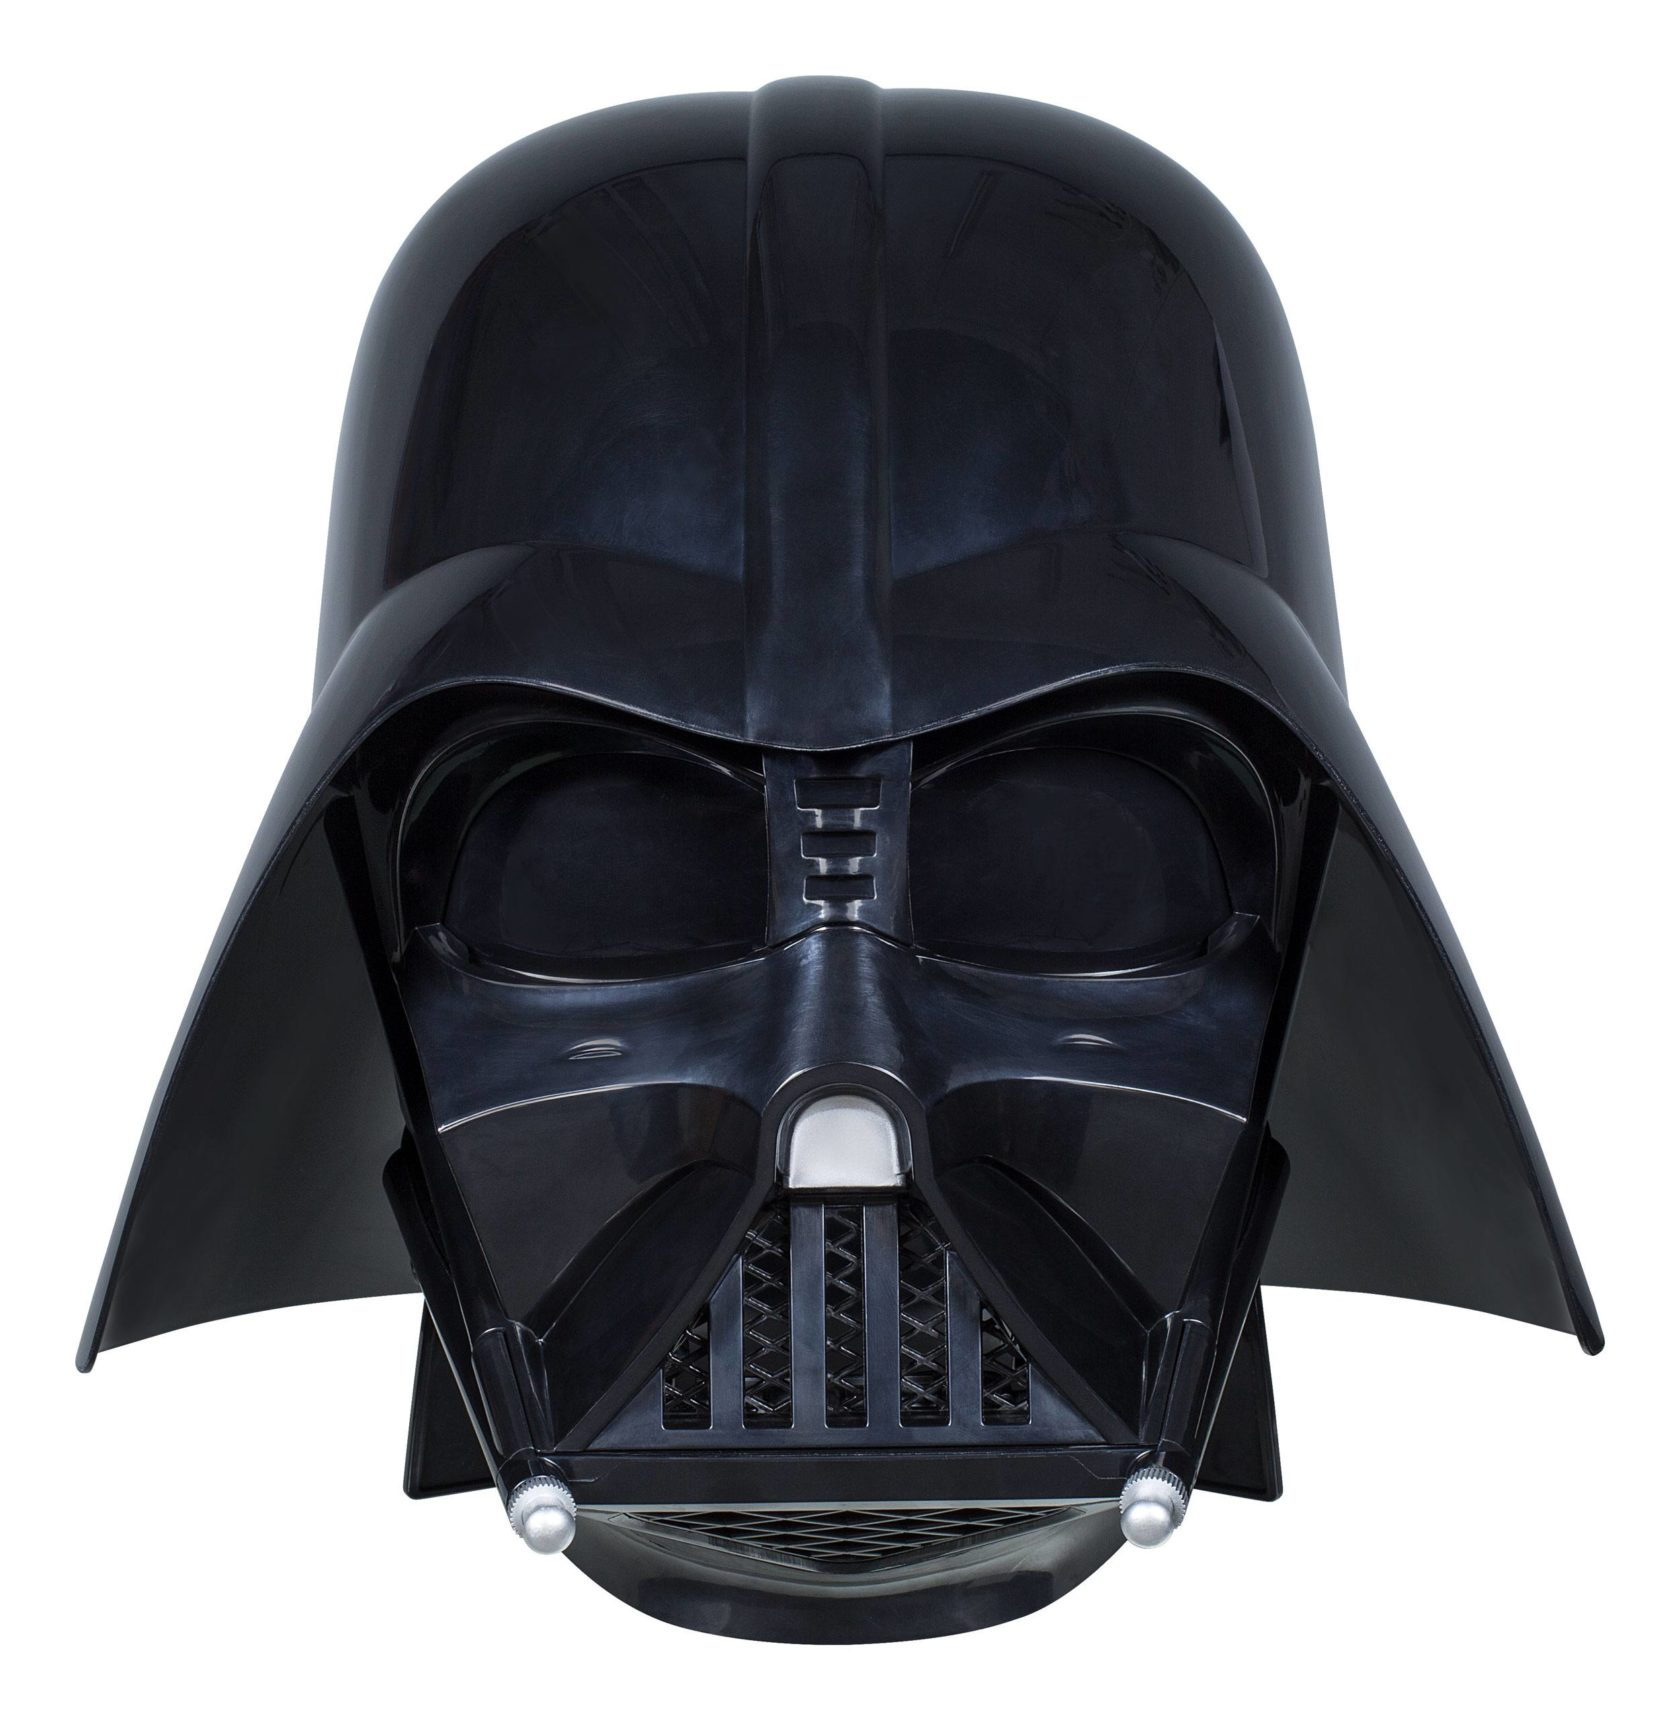 offizielle pressebilder zum hasbro darth vader helm. Black Bedroom Furniture Sets. Home Design Ideas